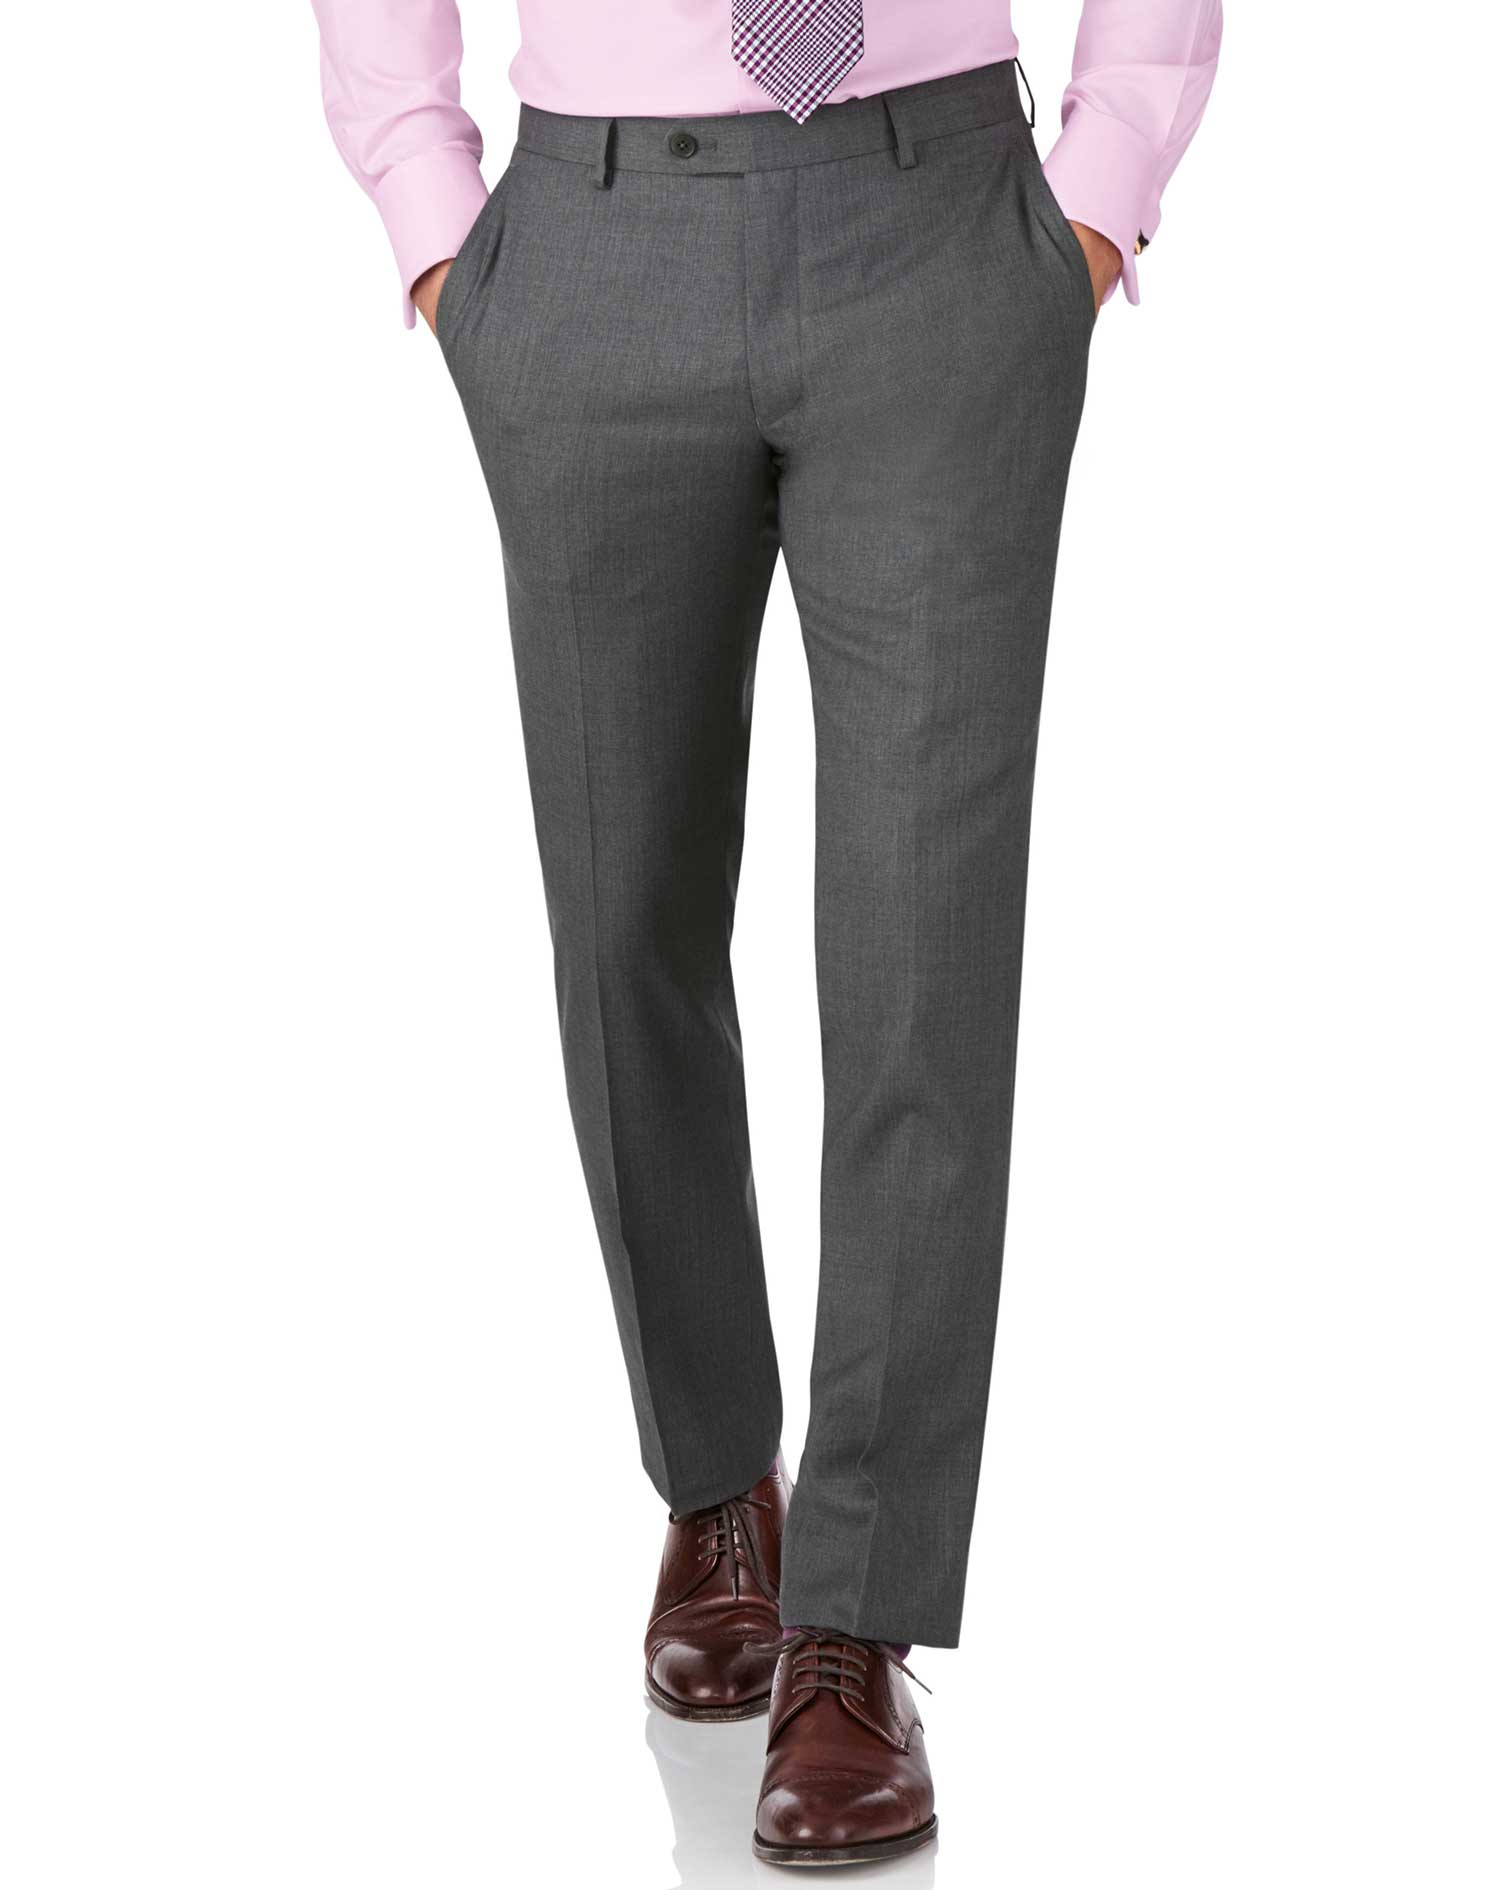 Mid Grey Slim Fit Twill Business Suit Trouser Size W40 L38 by Charles Tyrwhitt